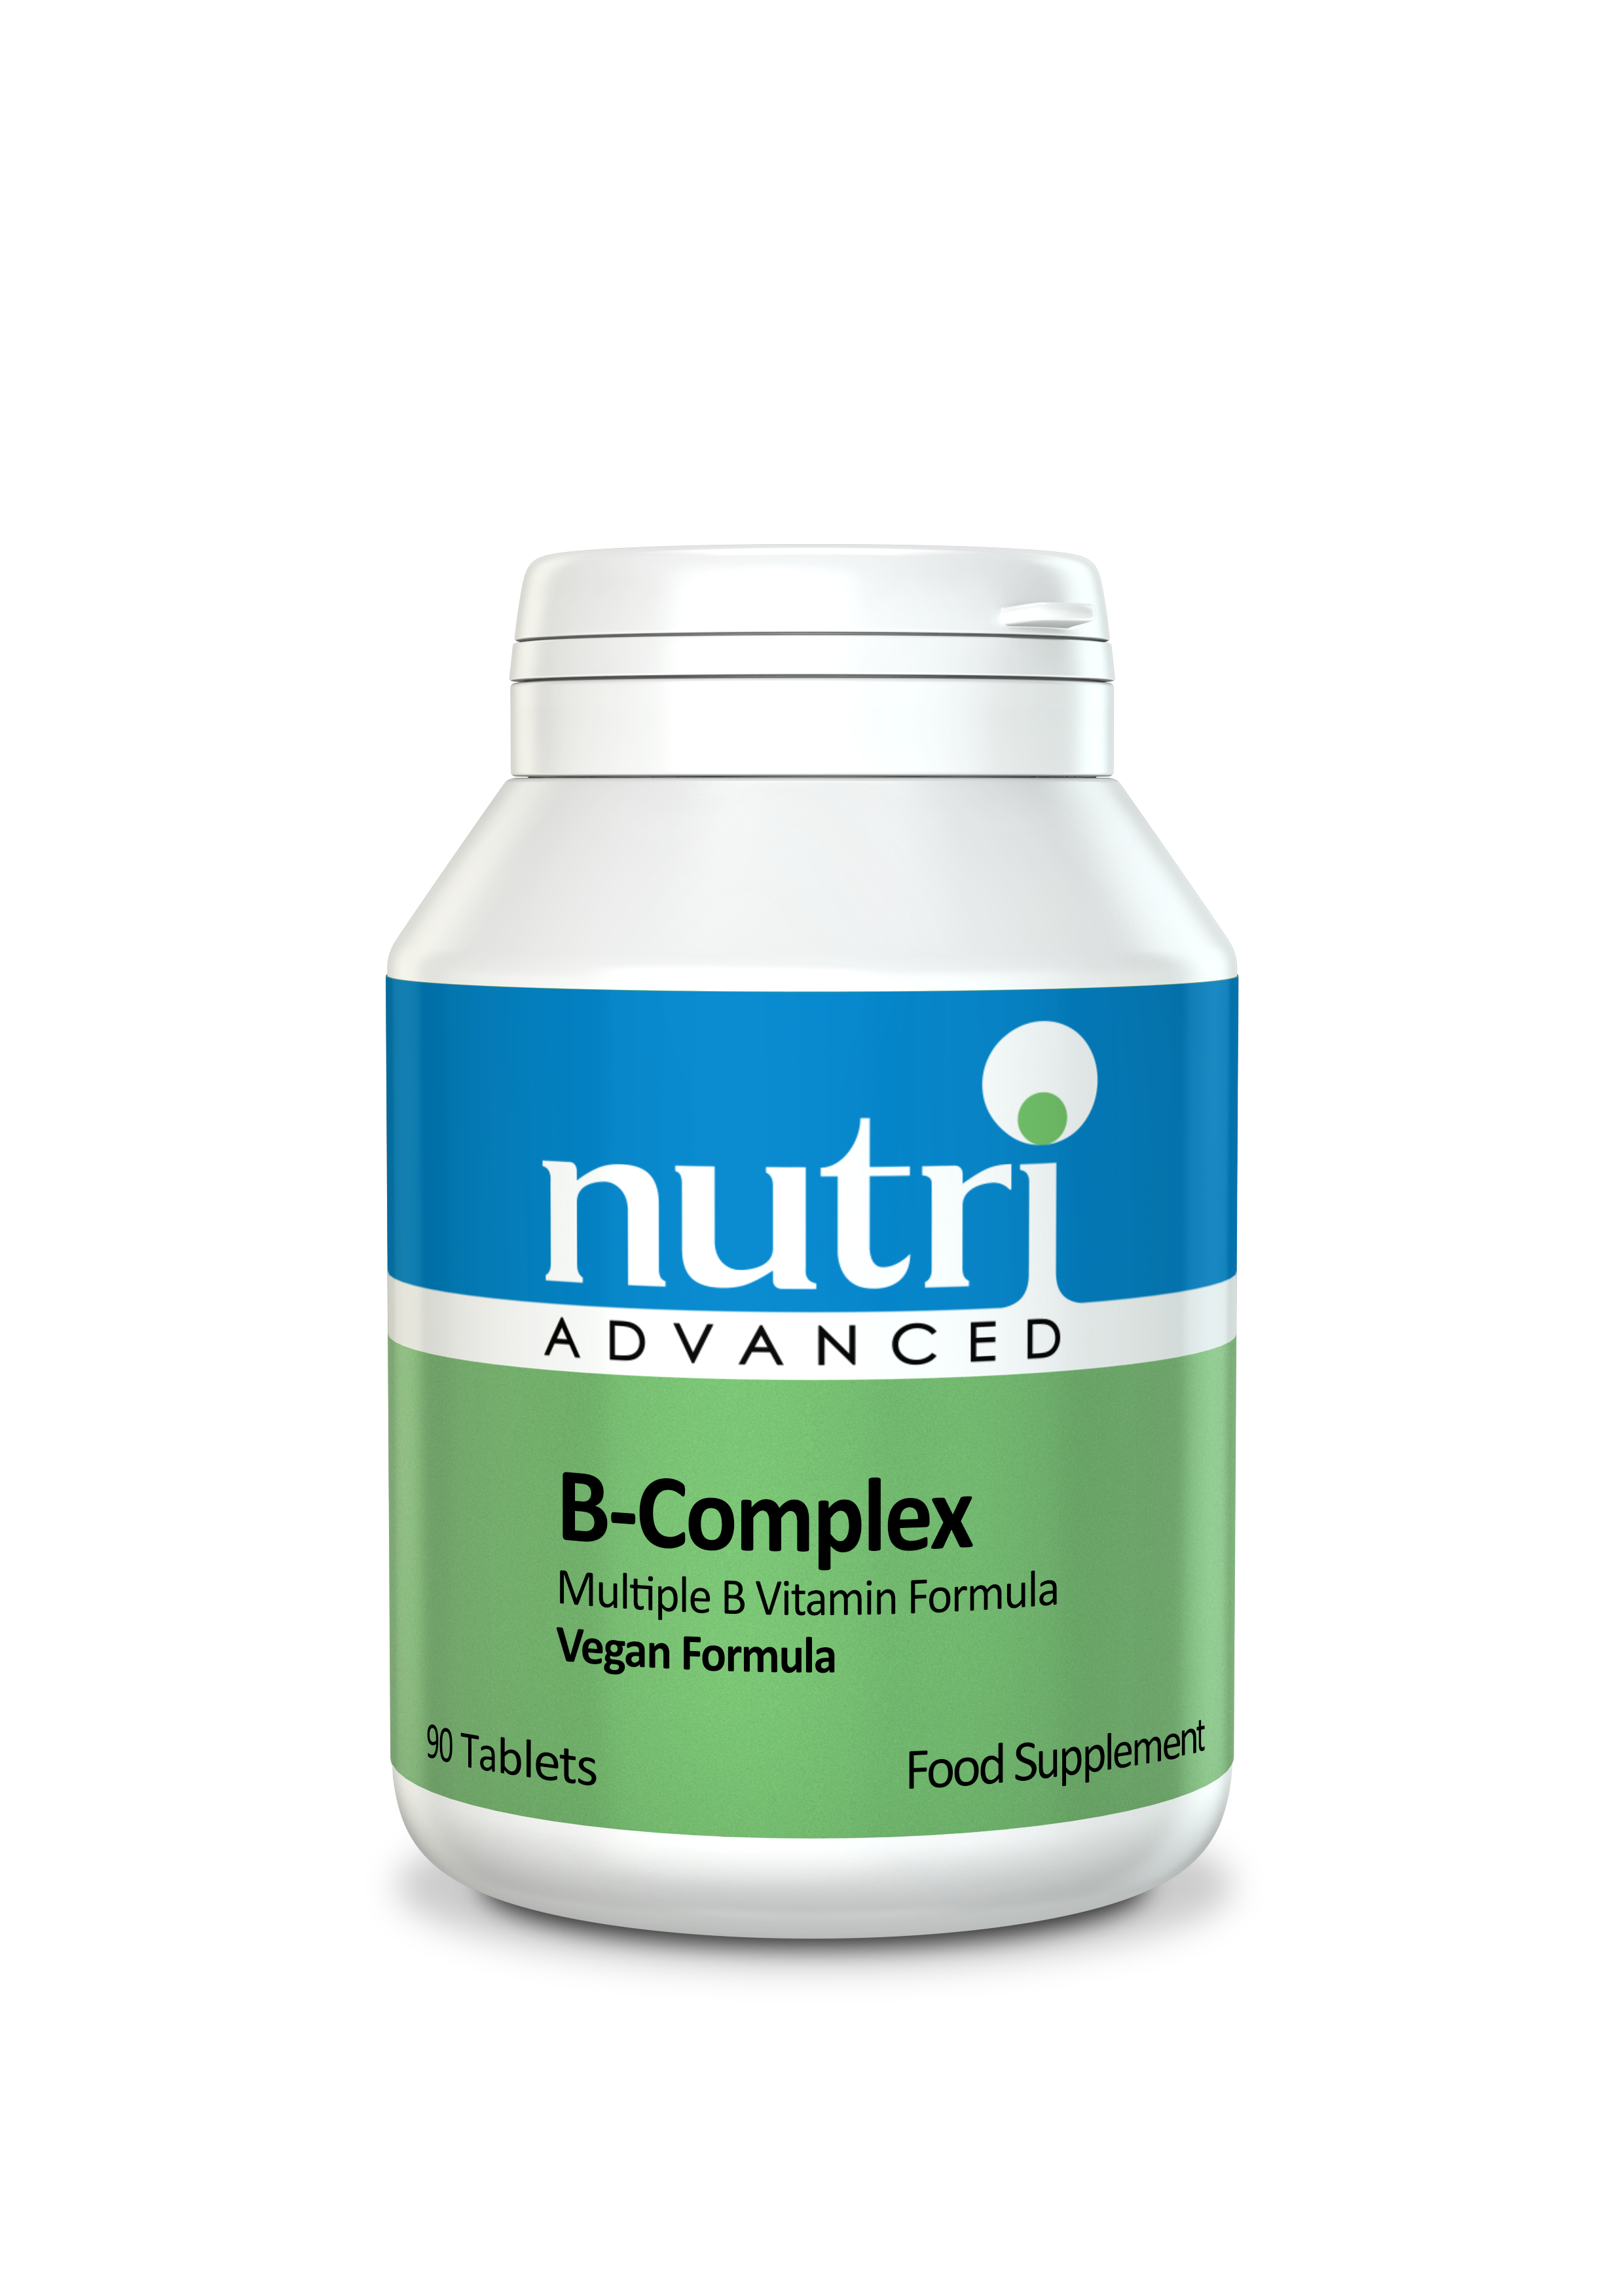 Nutri Advanced B-Complex - 90